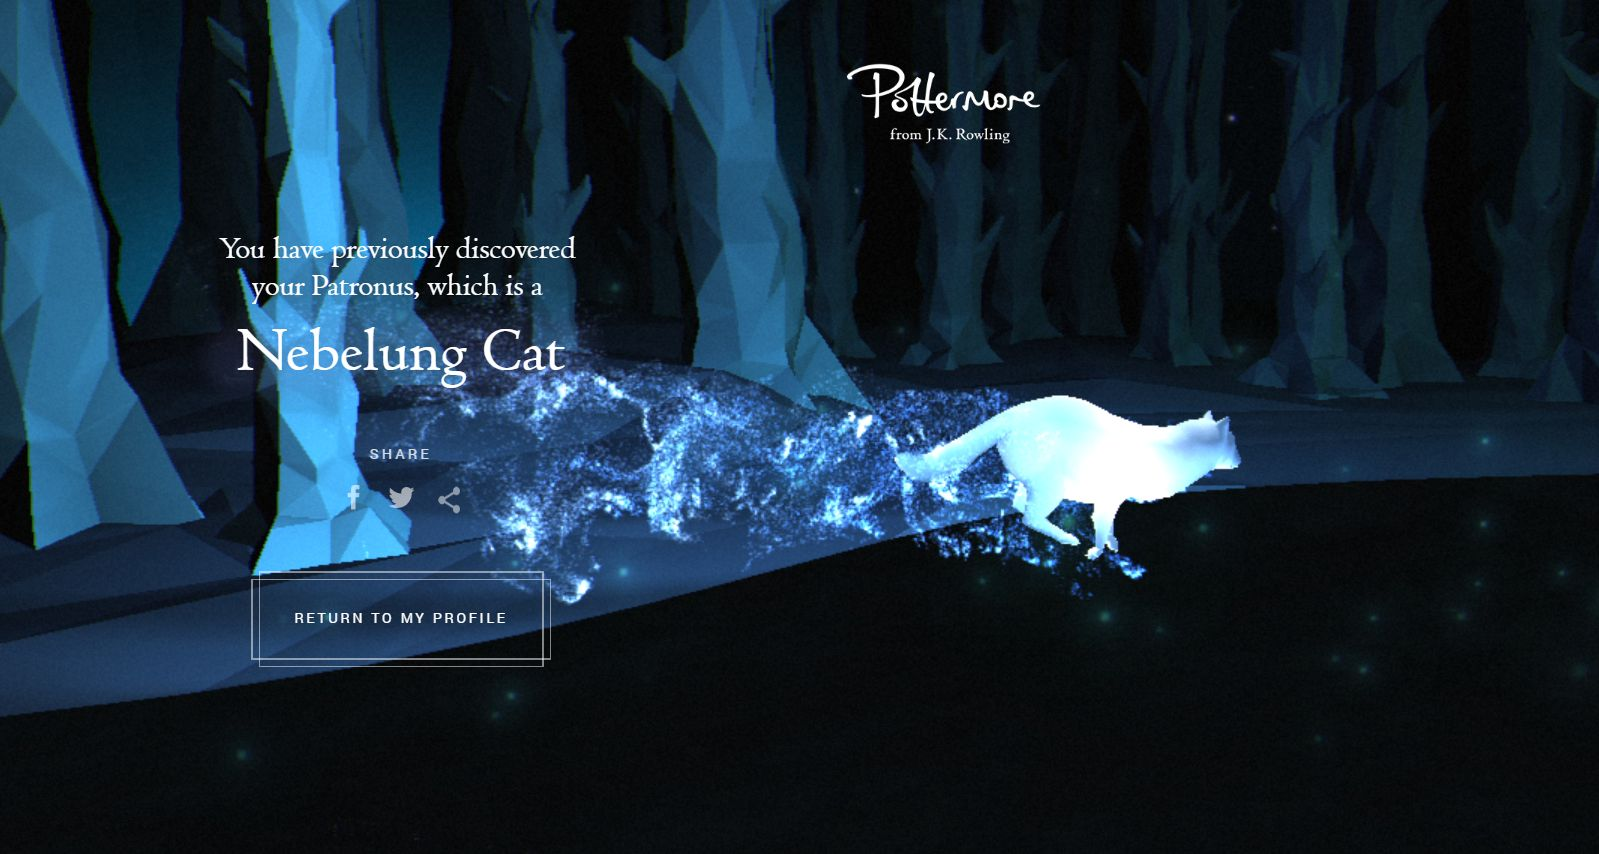 how to get an otter as a patronus on pottermore